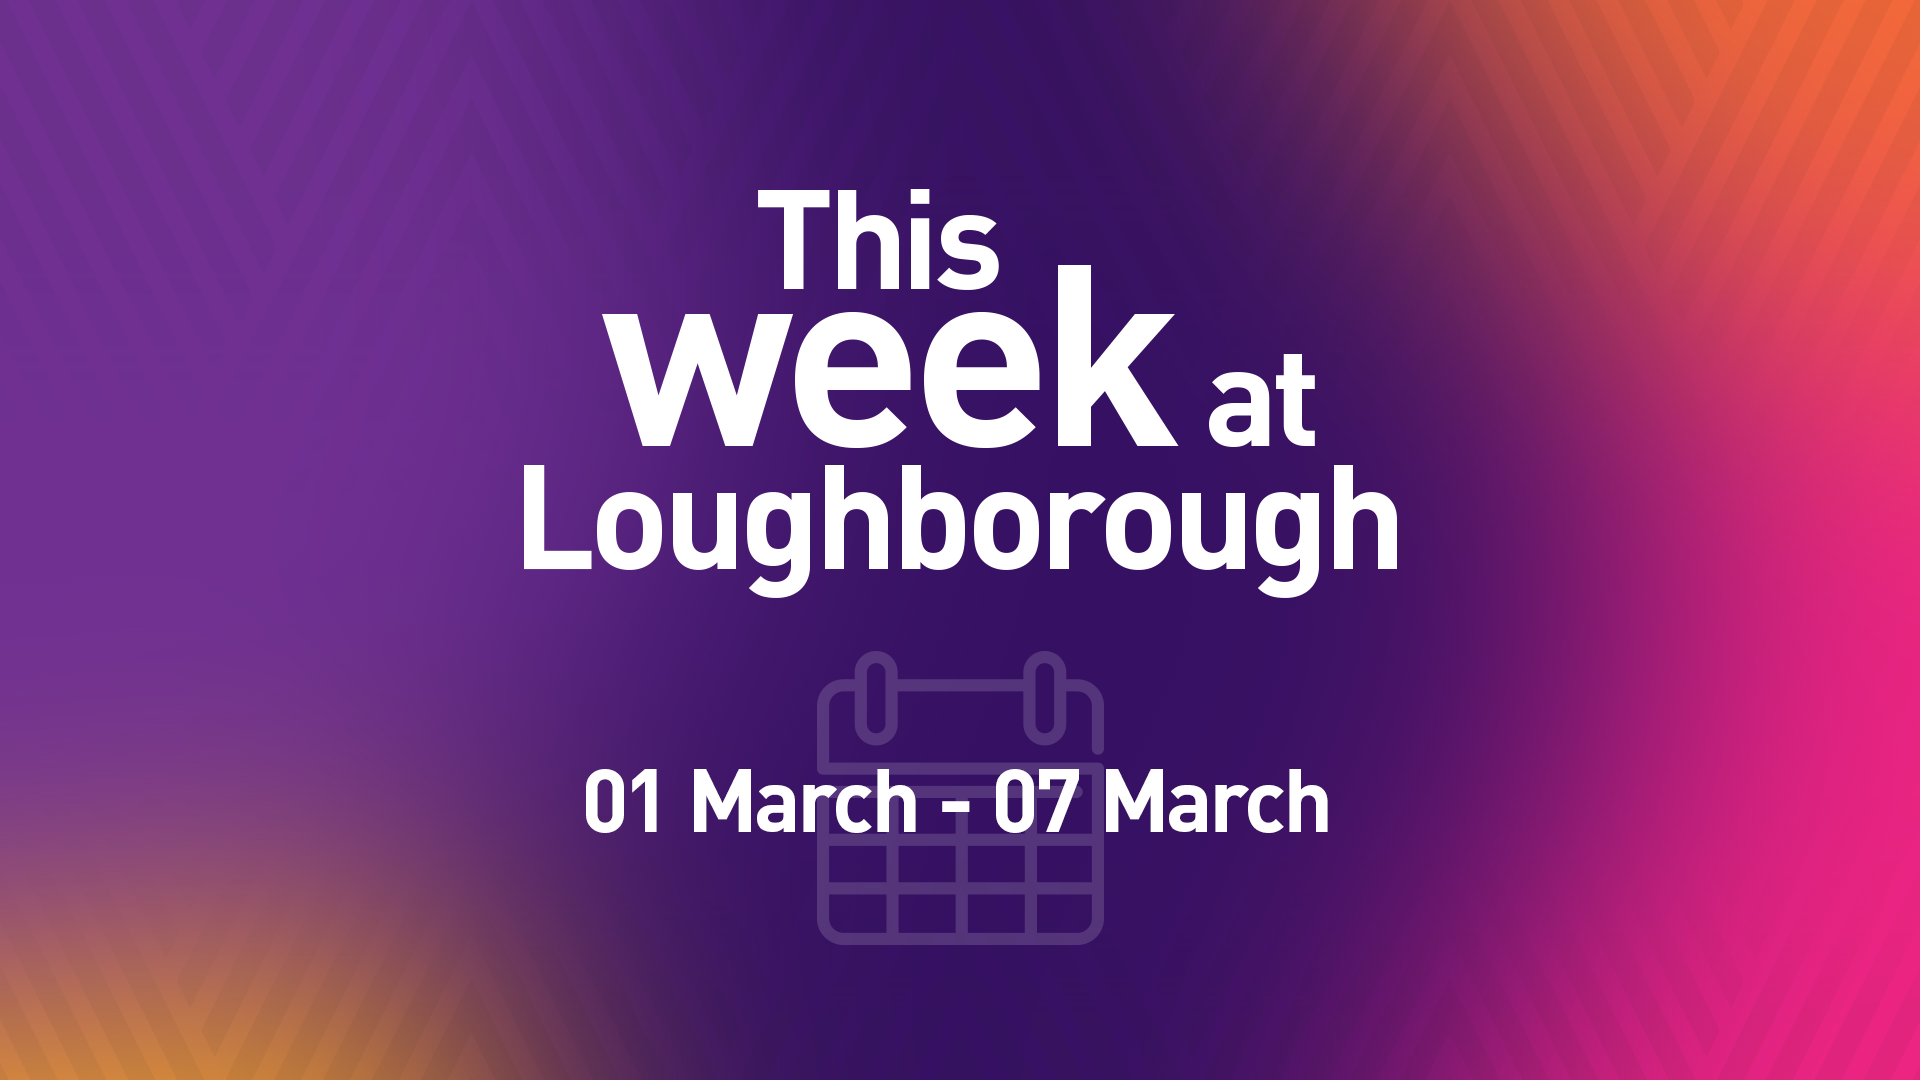 This Week at Loughborough | 01 March